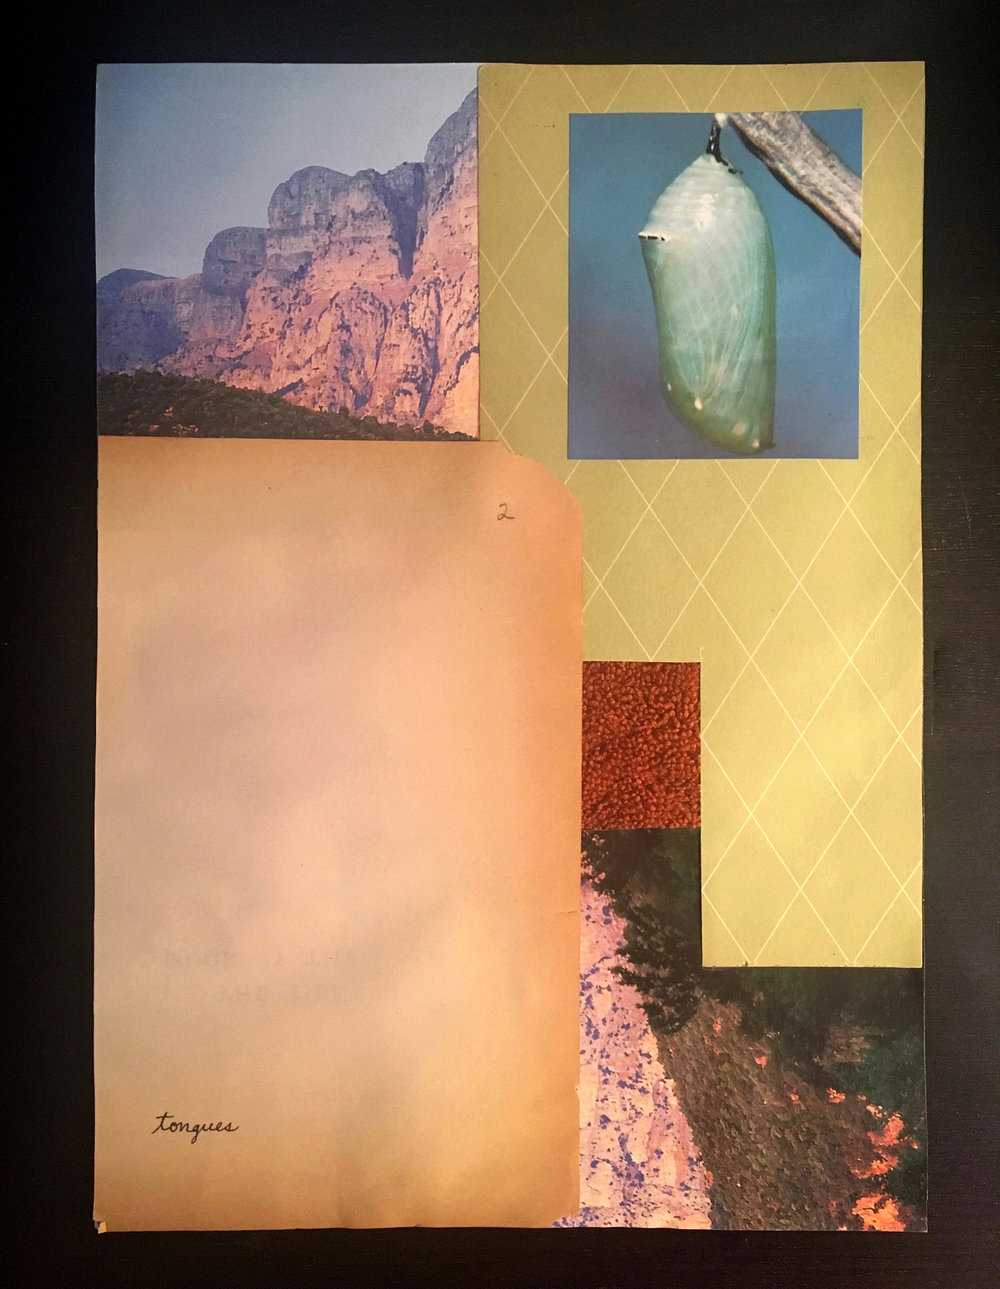 2 Tongues, 2017  Found vintage book paper, found images, cloth 8.5 x 11.5 in